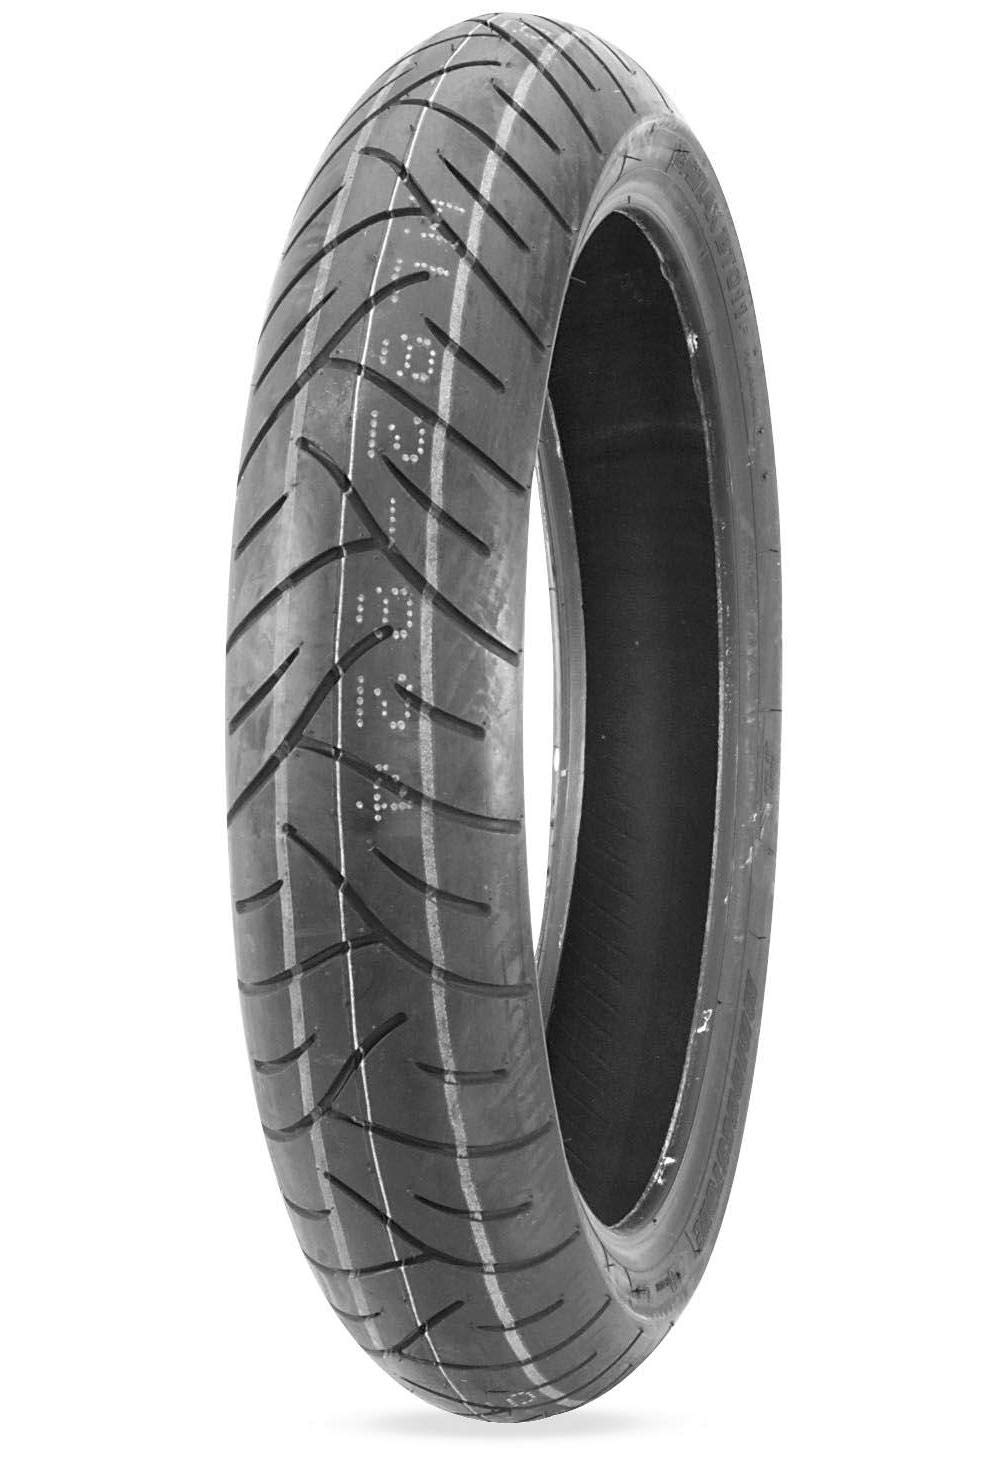 Bridgestone Exedra G721 Front Tire - 120/70-21, Load Rating: 62, Speed Rating: H, Tire Application: Touring, Position: Front, Tire Size: 120/70-21, Tire Construction: Bias, Tire Type: Street, R